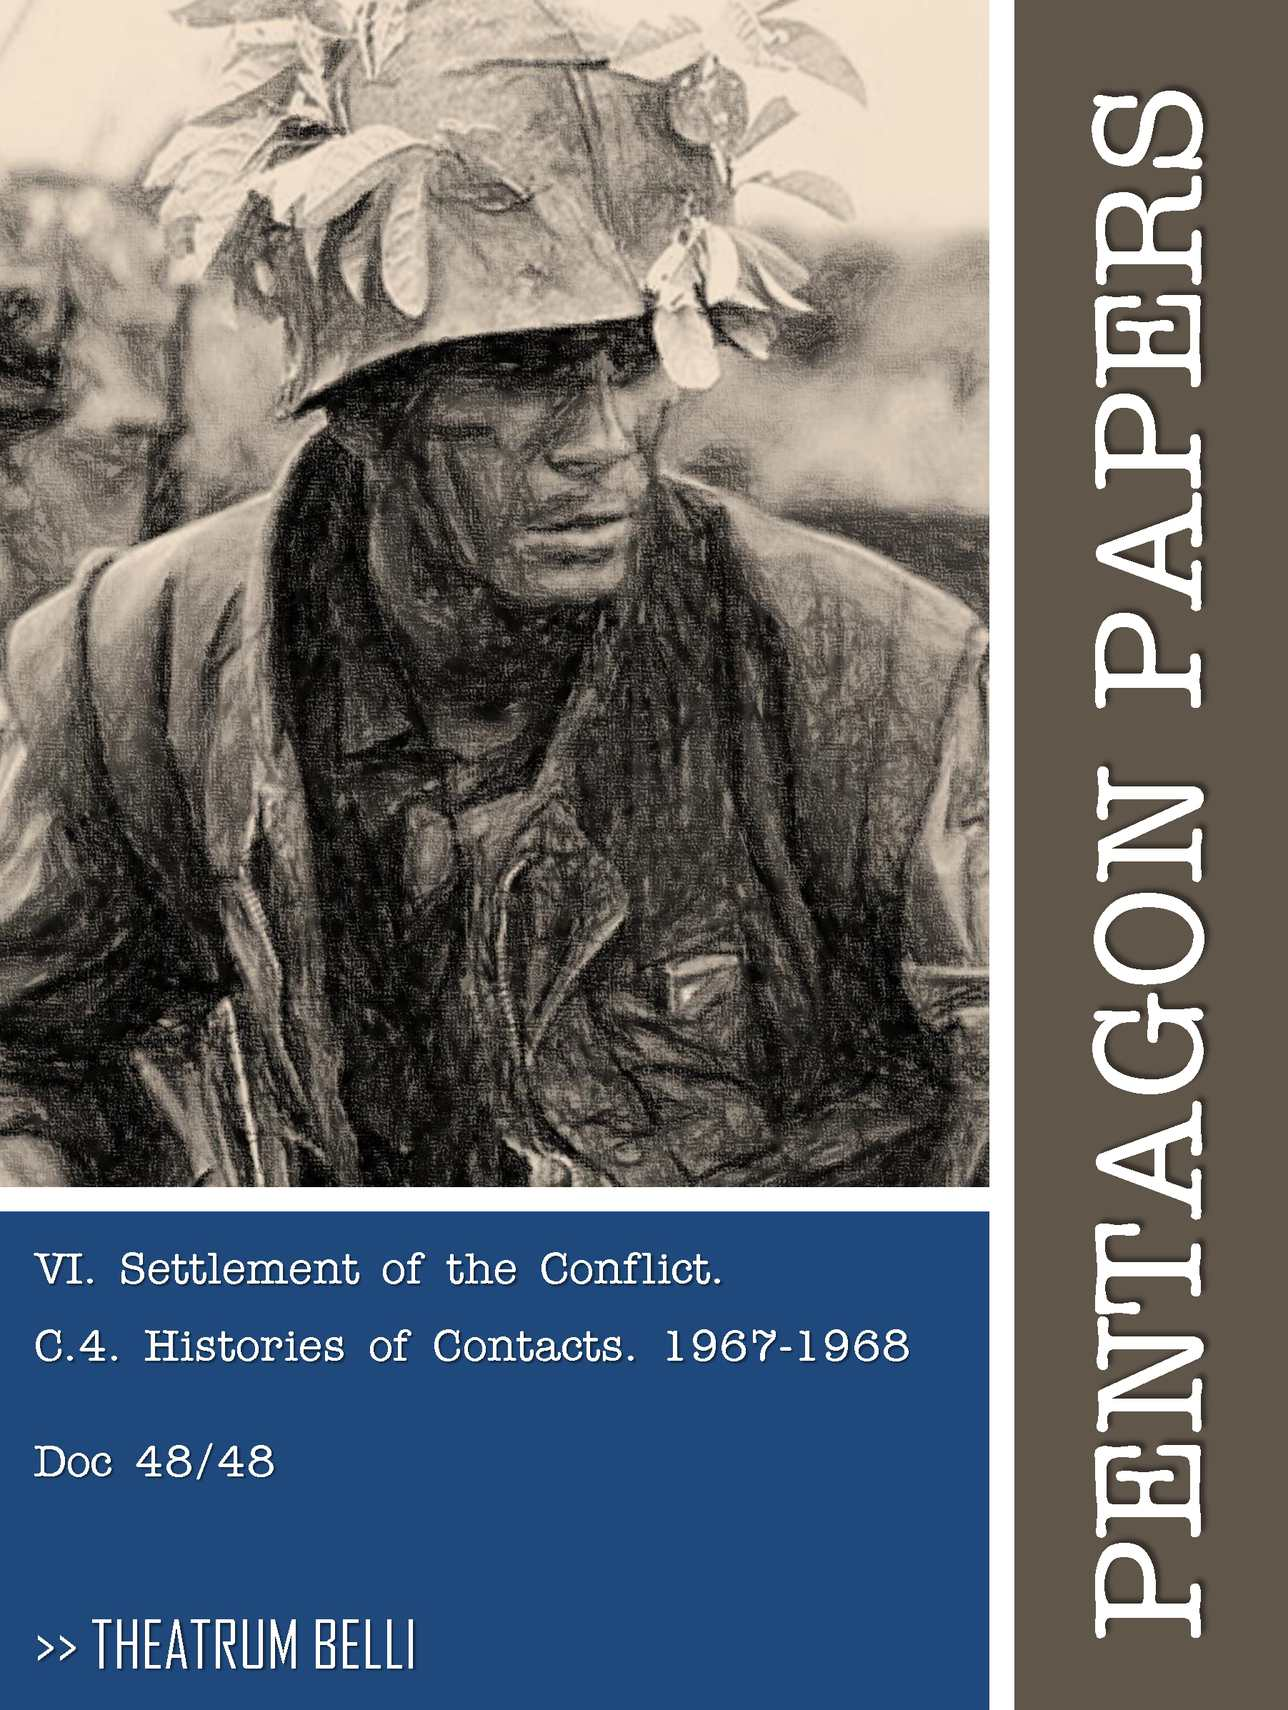 Pentagon Papers (48/48) : Settlement of the Conflict - Histories of Contacts, 1967-68